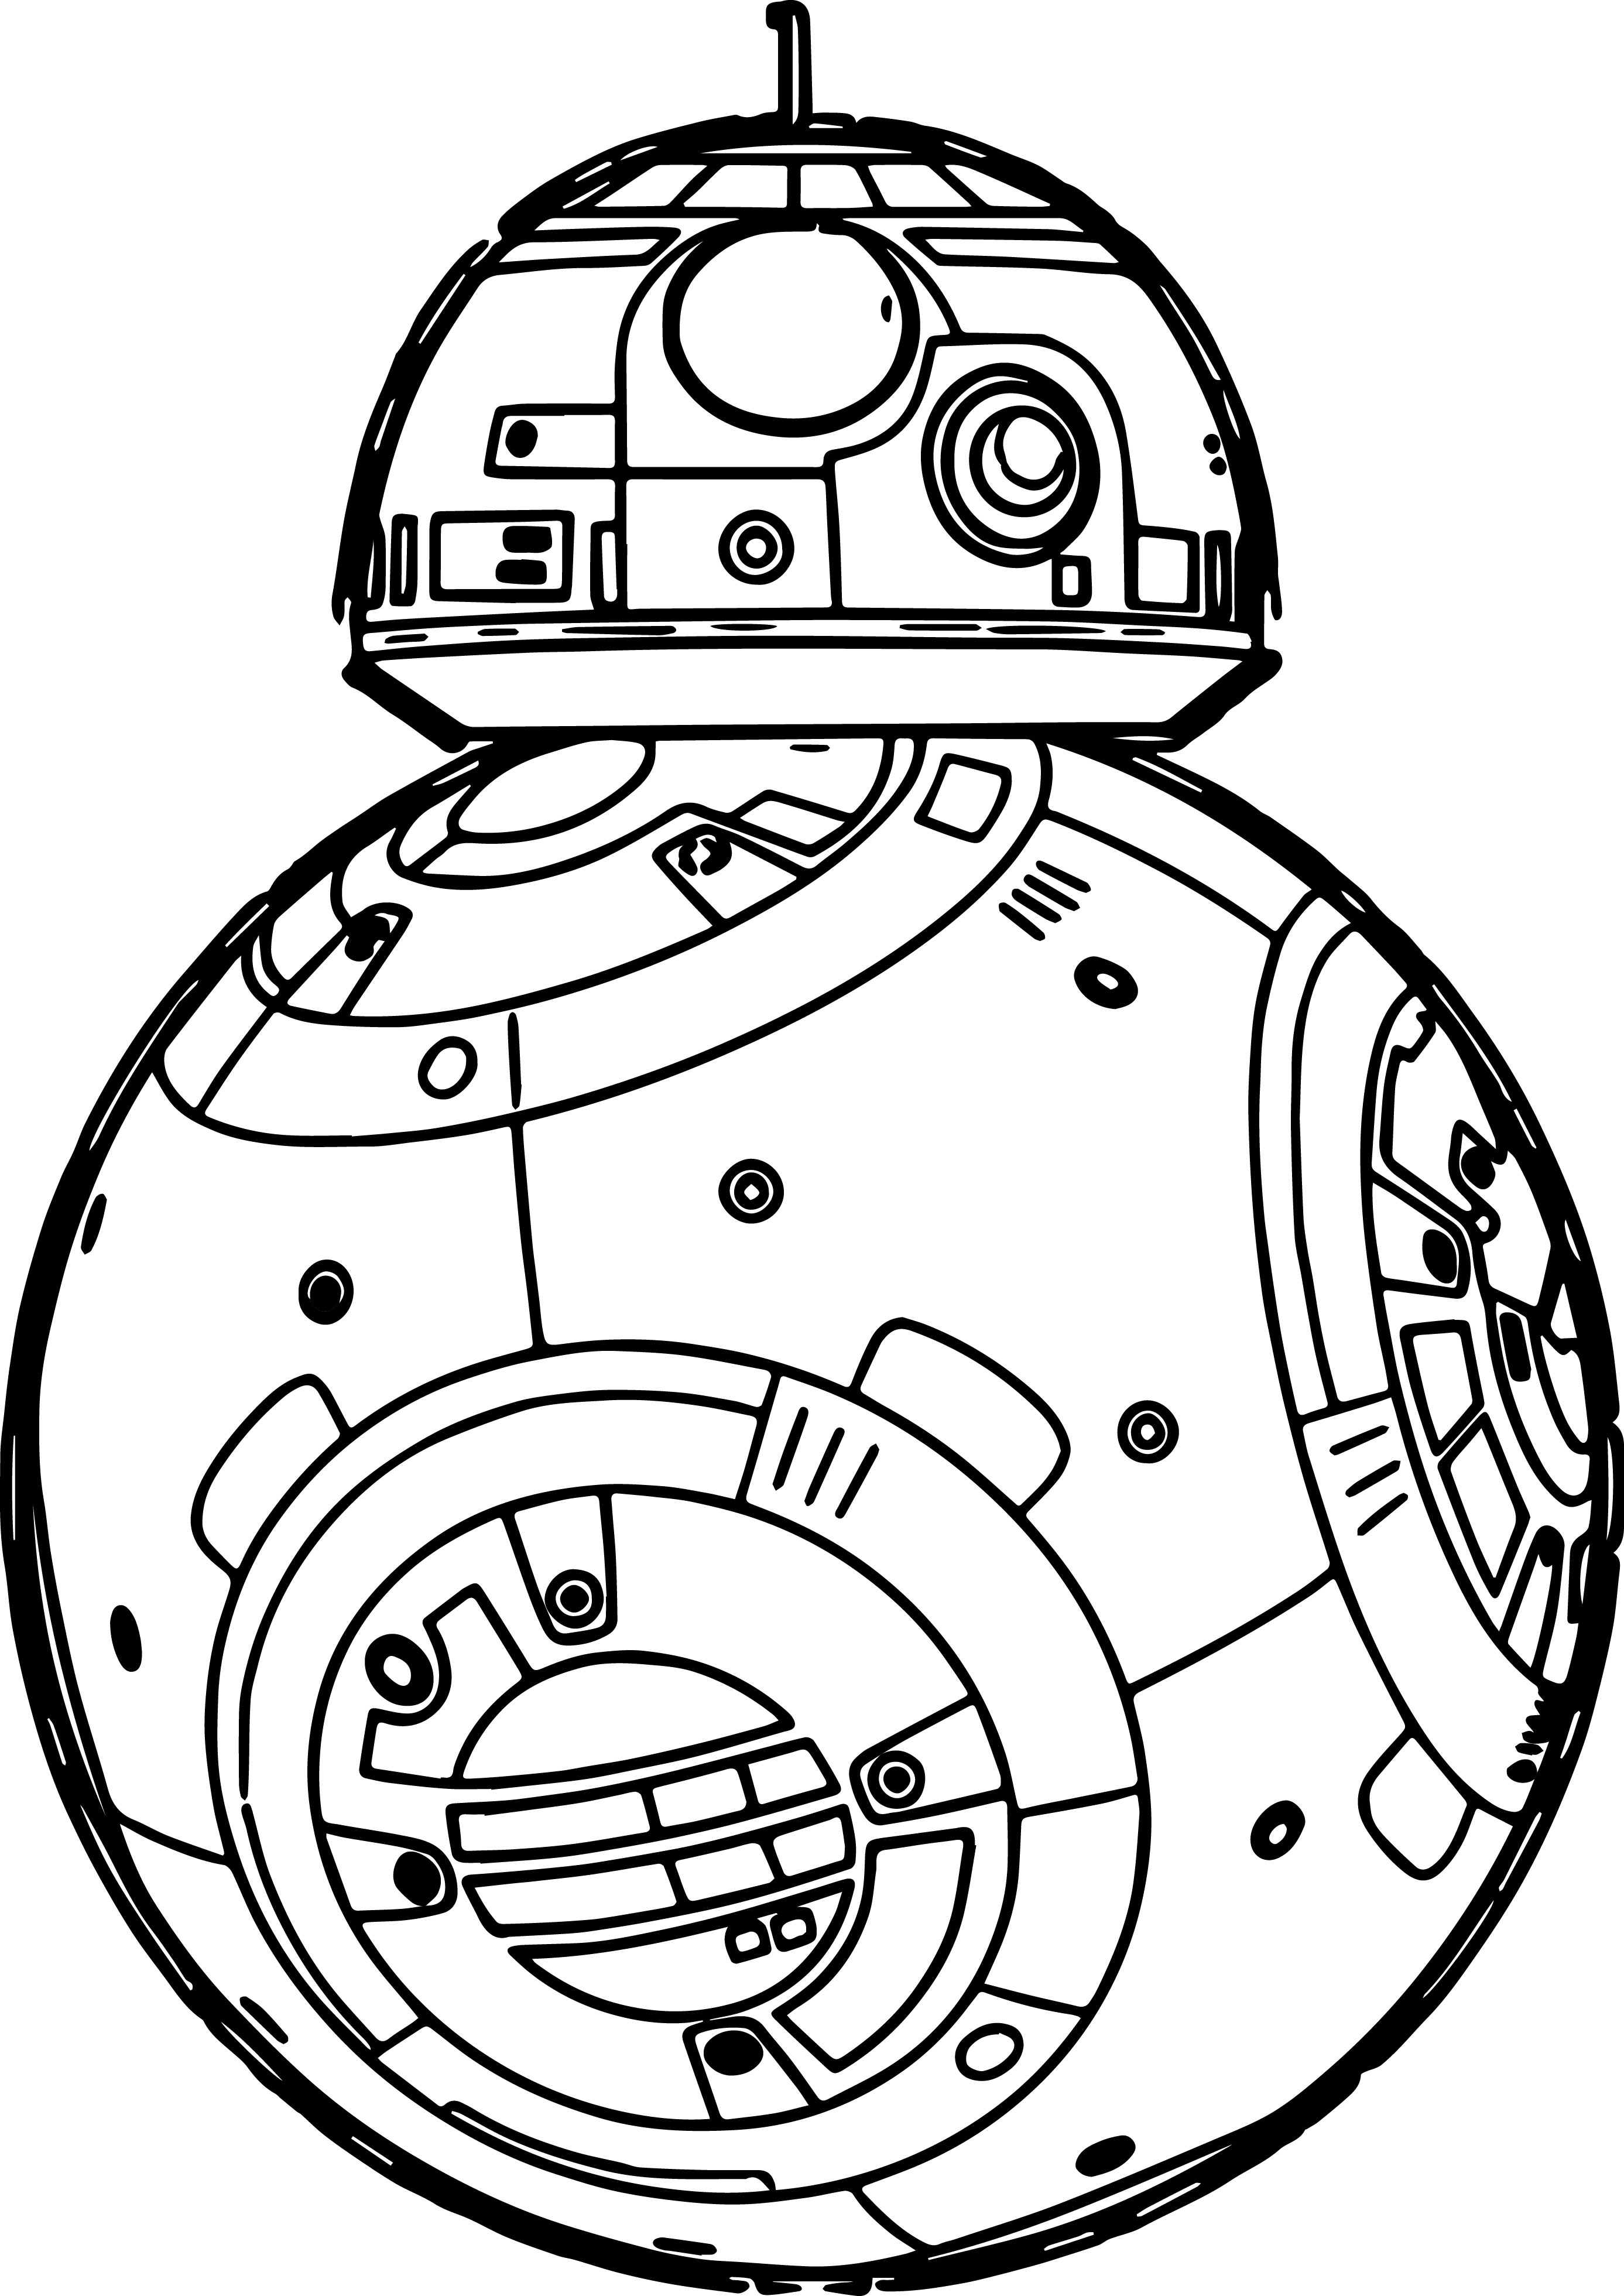 star wars color star wars coloring pages download and print star wars color wars star 1 1